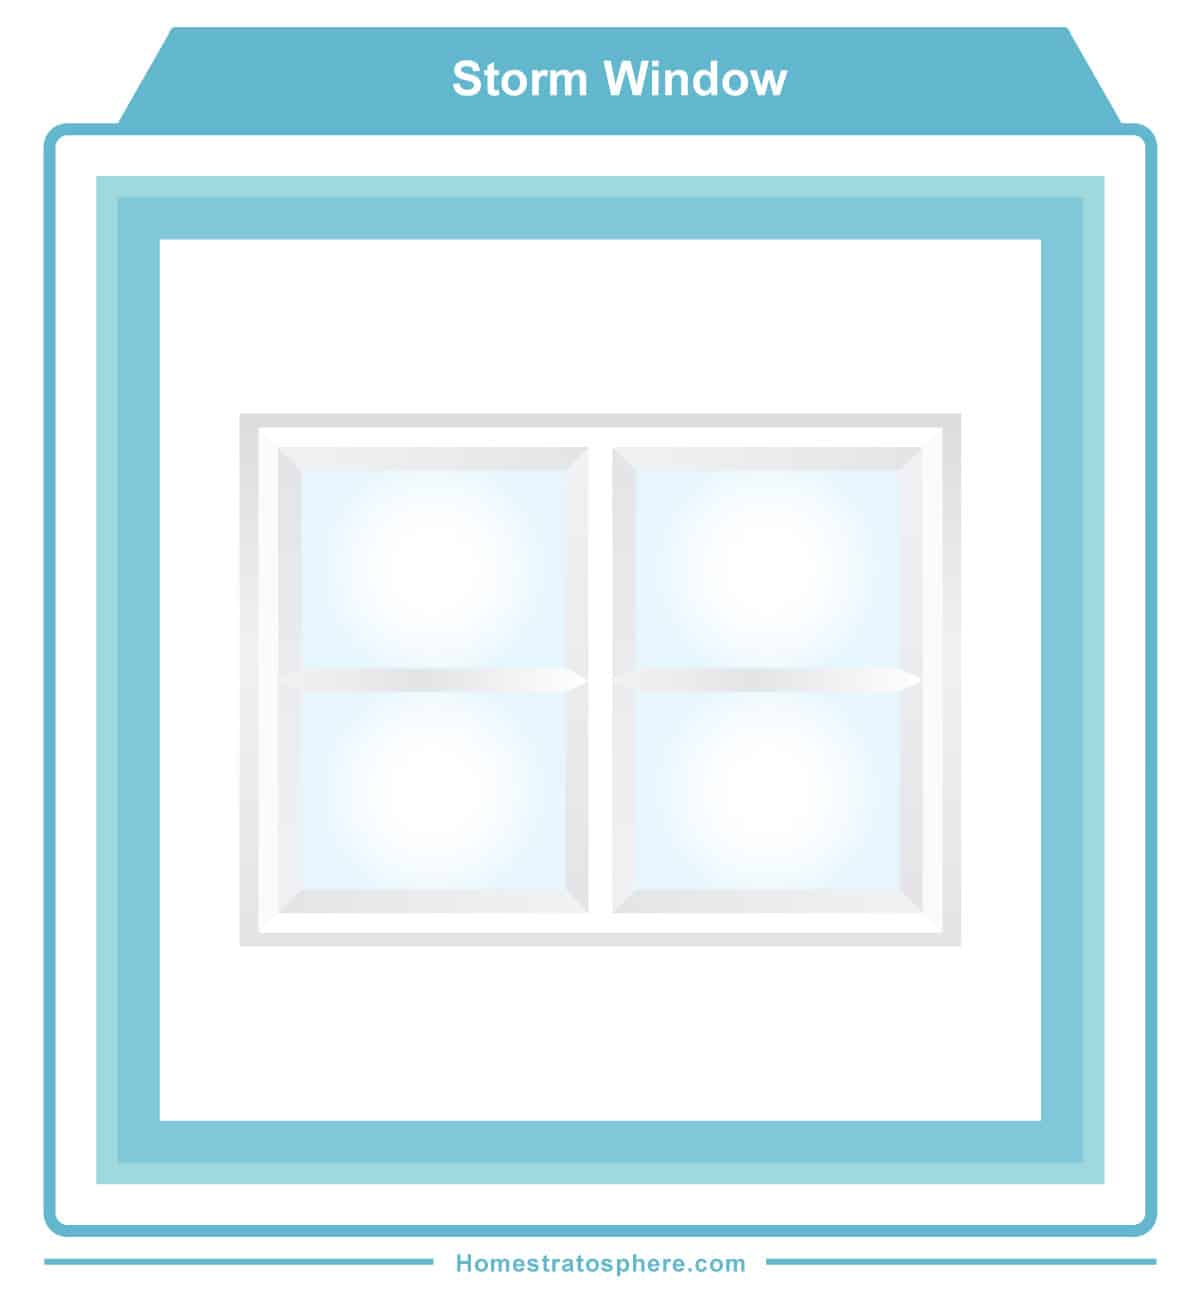 Storm Window diagram